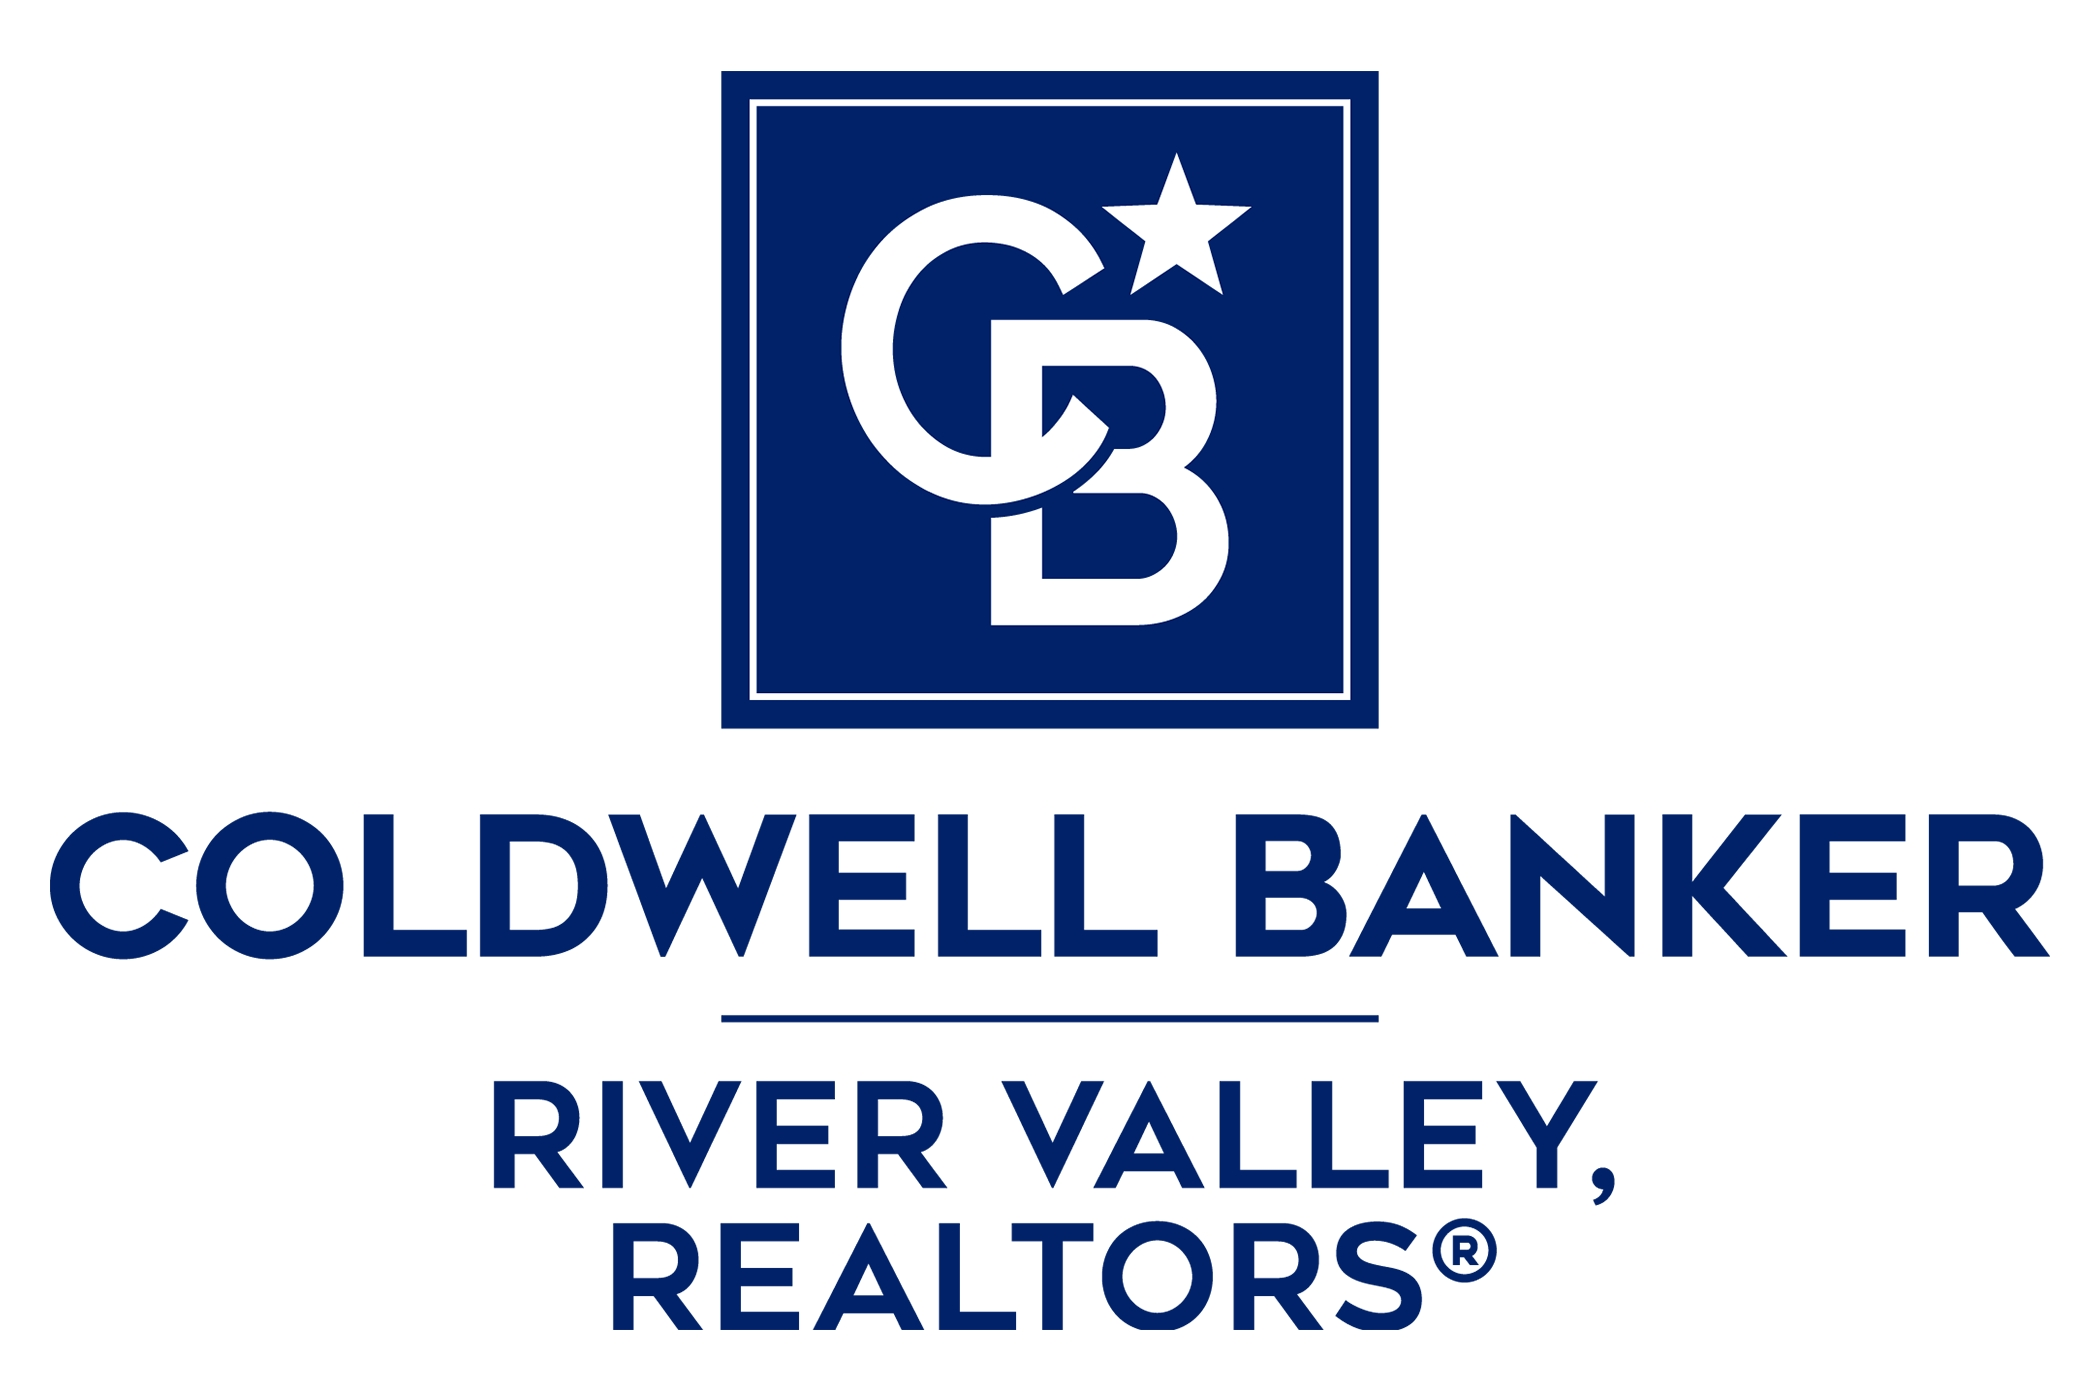 Steve Johnson - Coldwell Banker River Valley Realtors